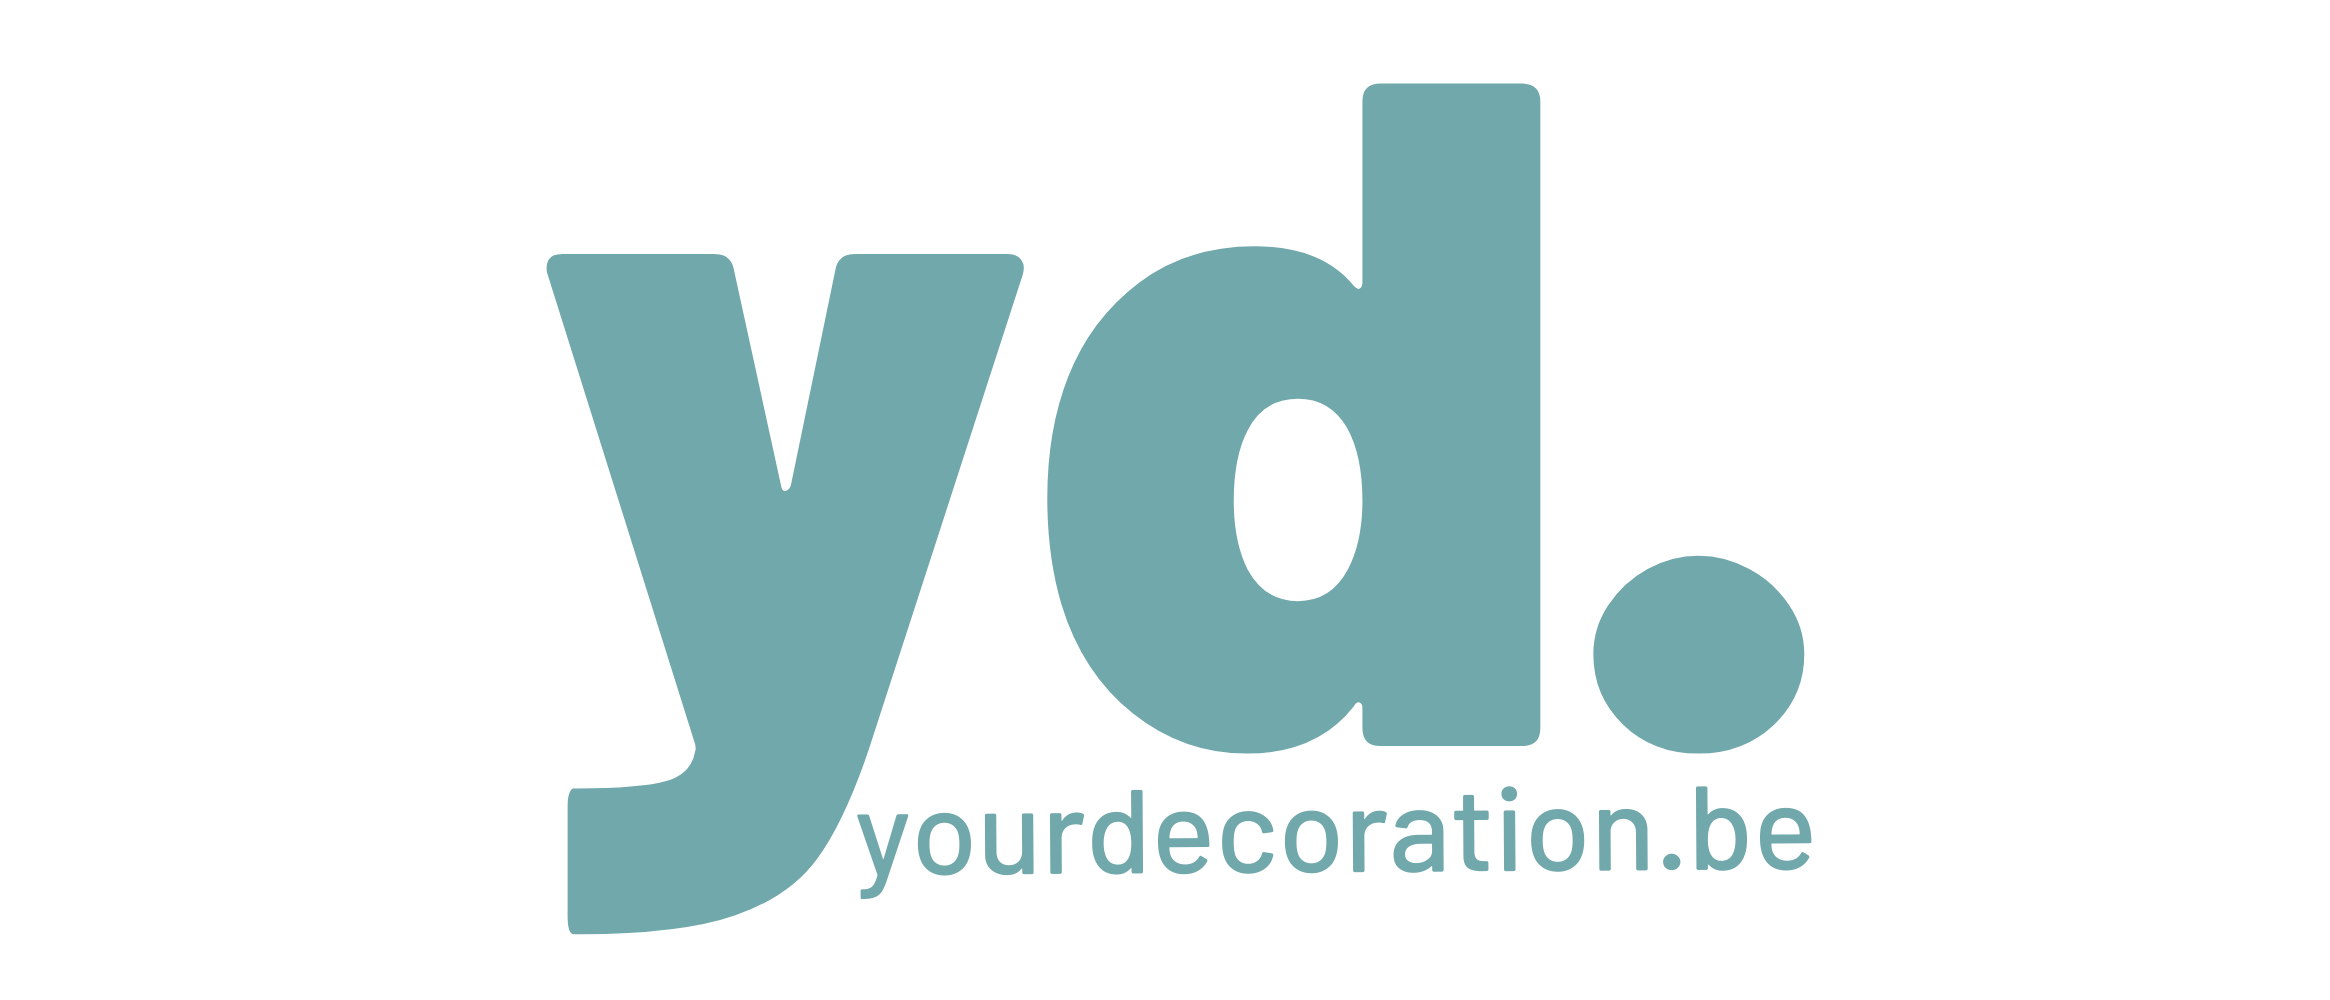 Yourdecoration.be